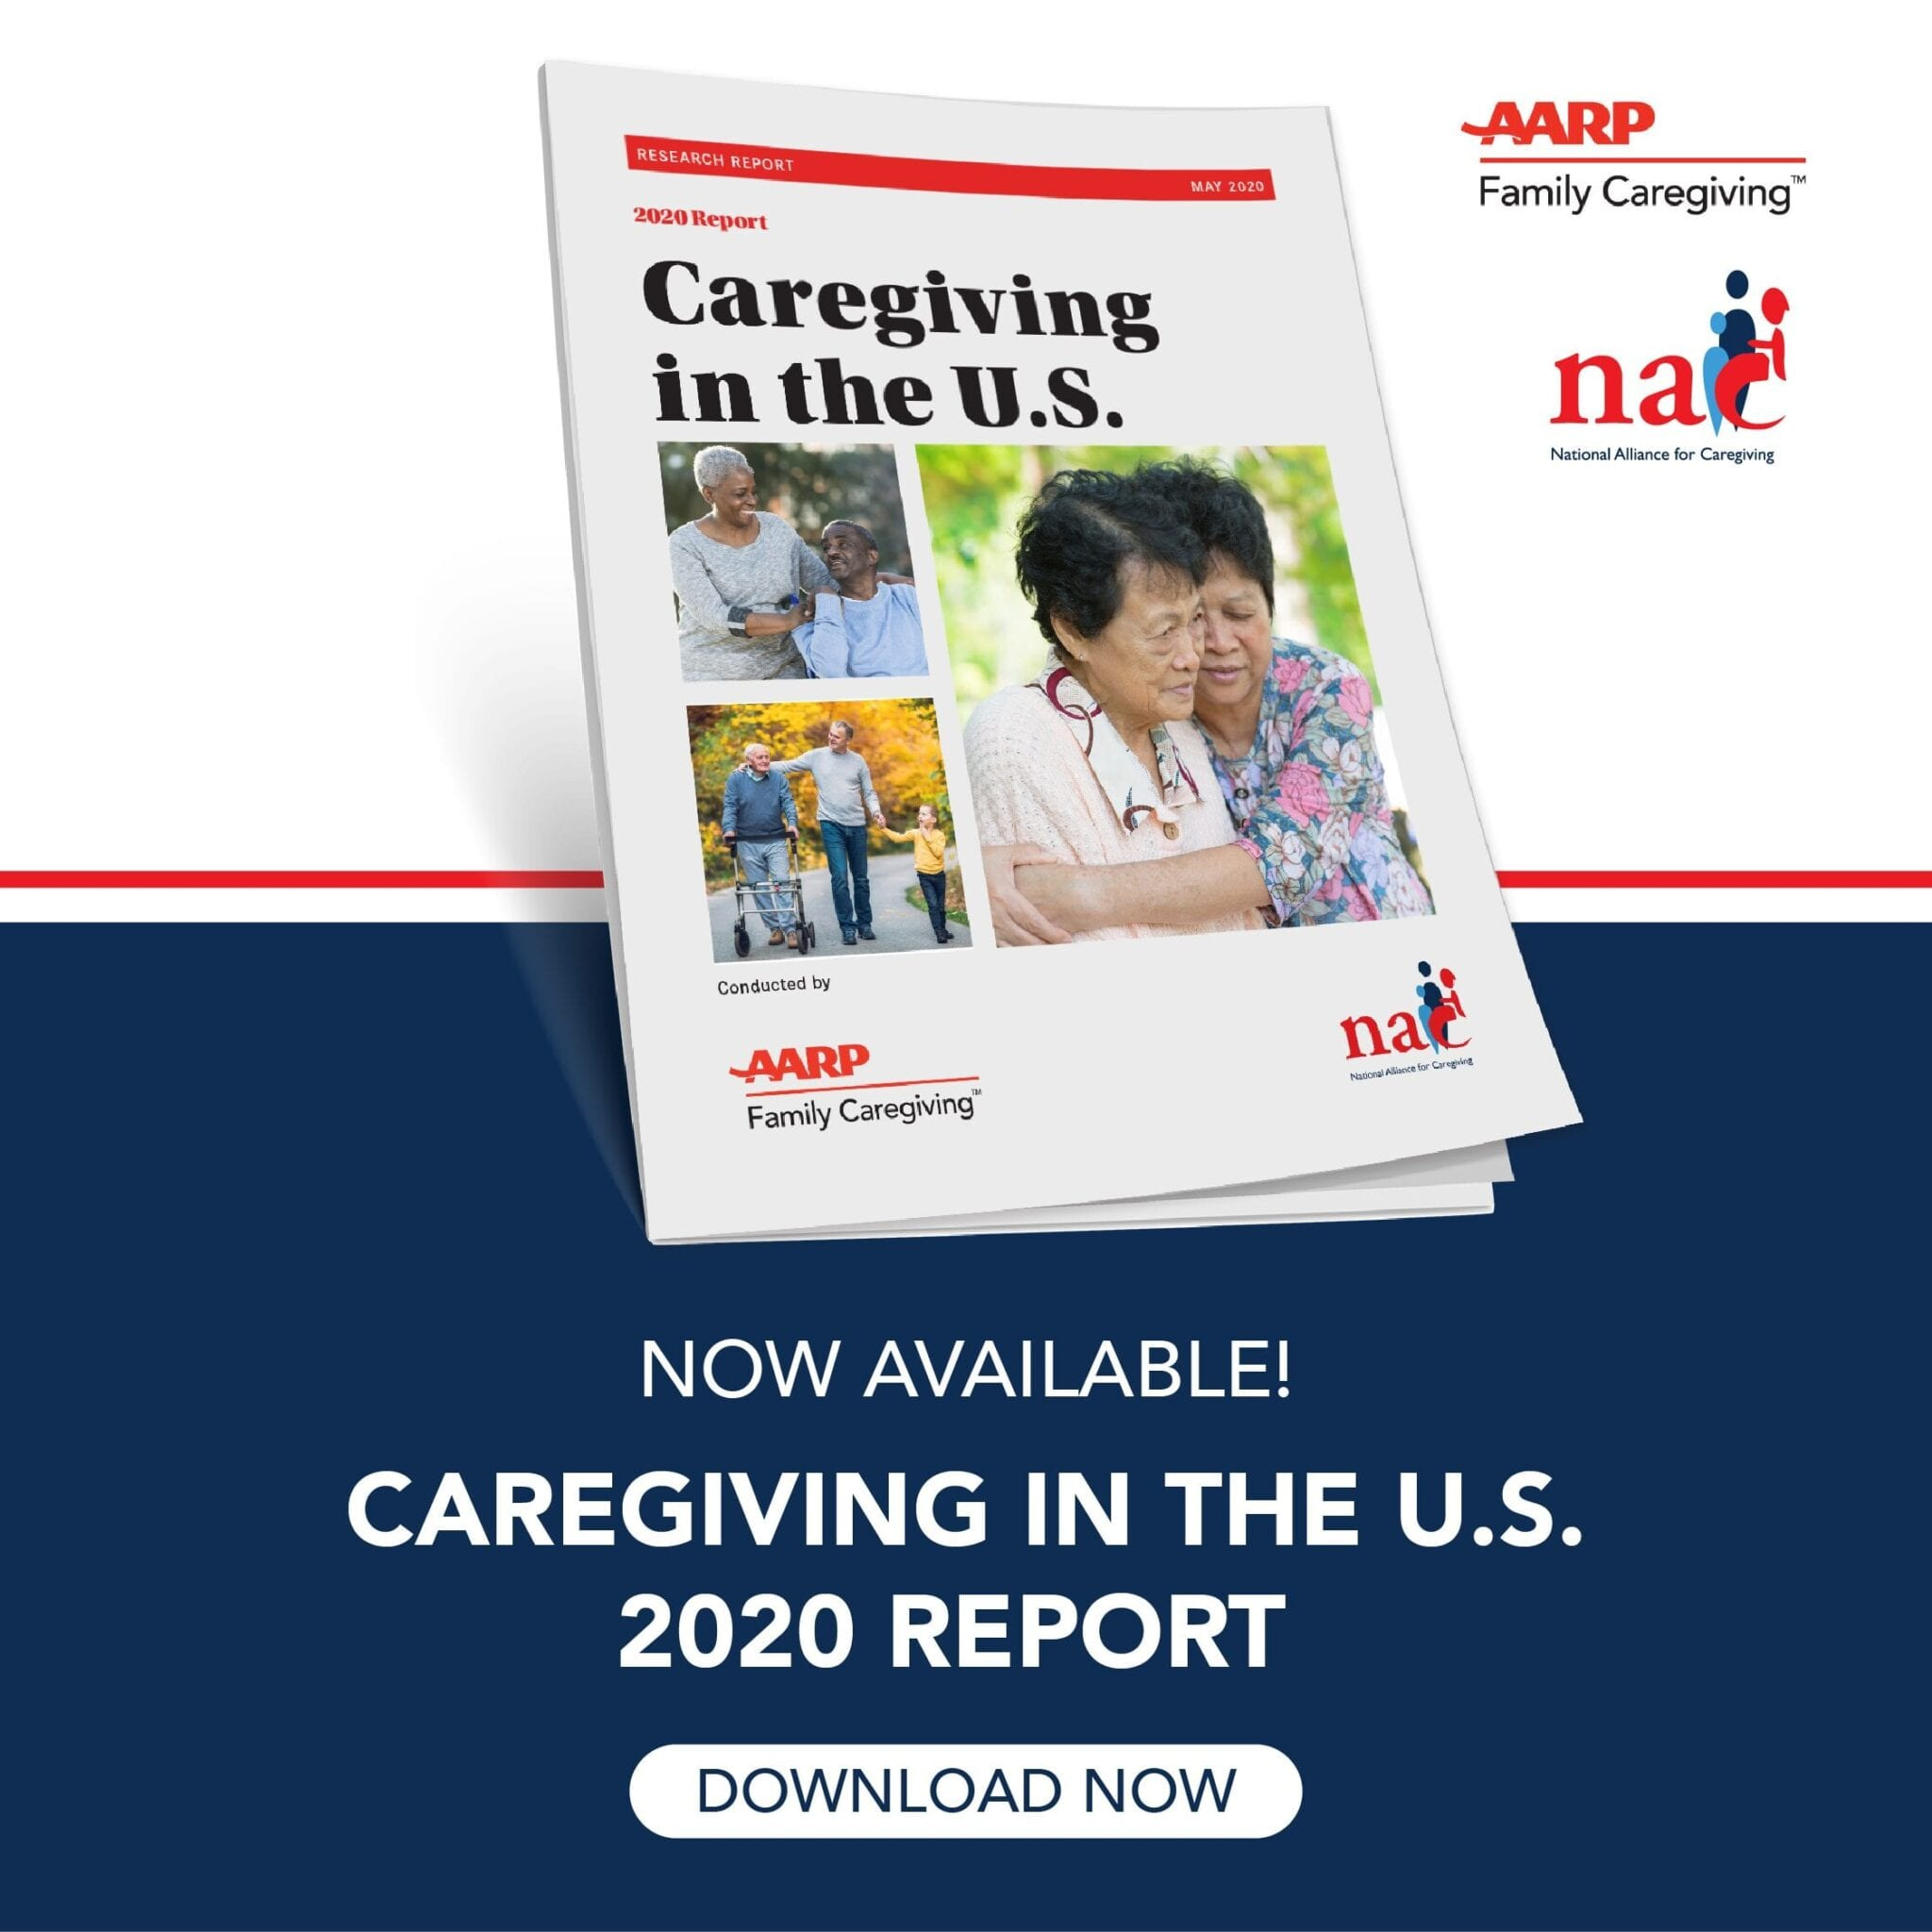 Caregiving in the U.S. 2020 Report